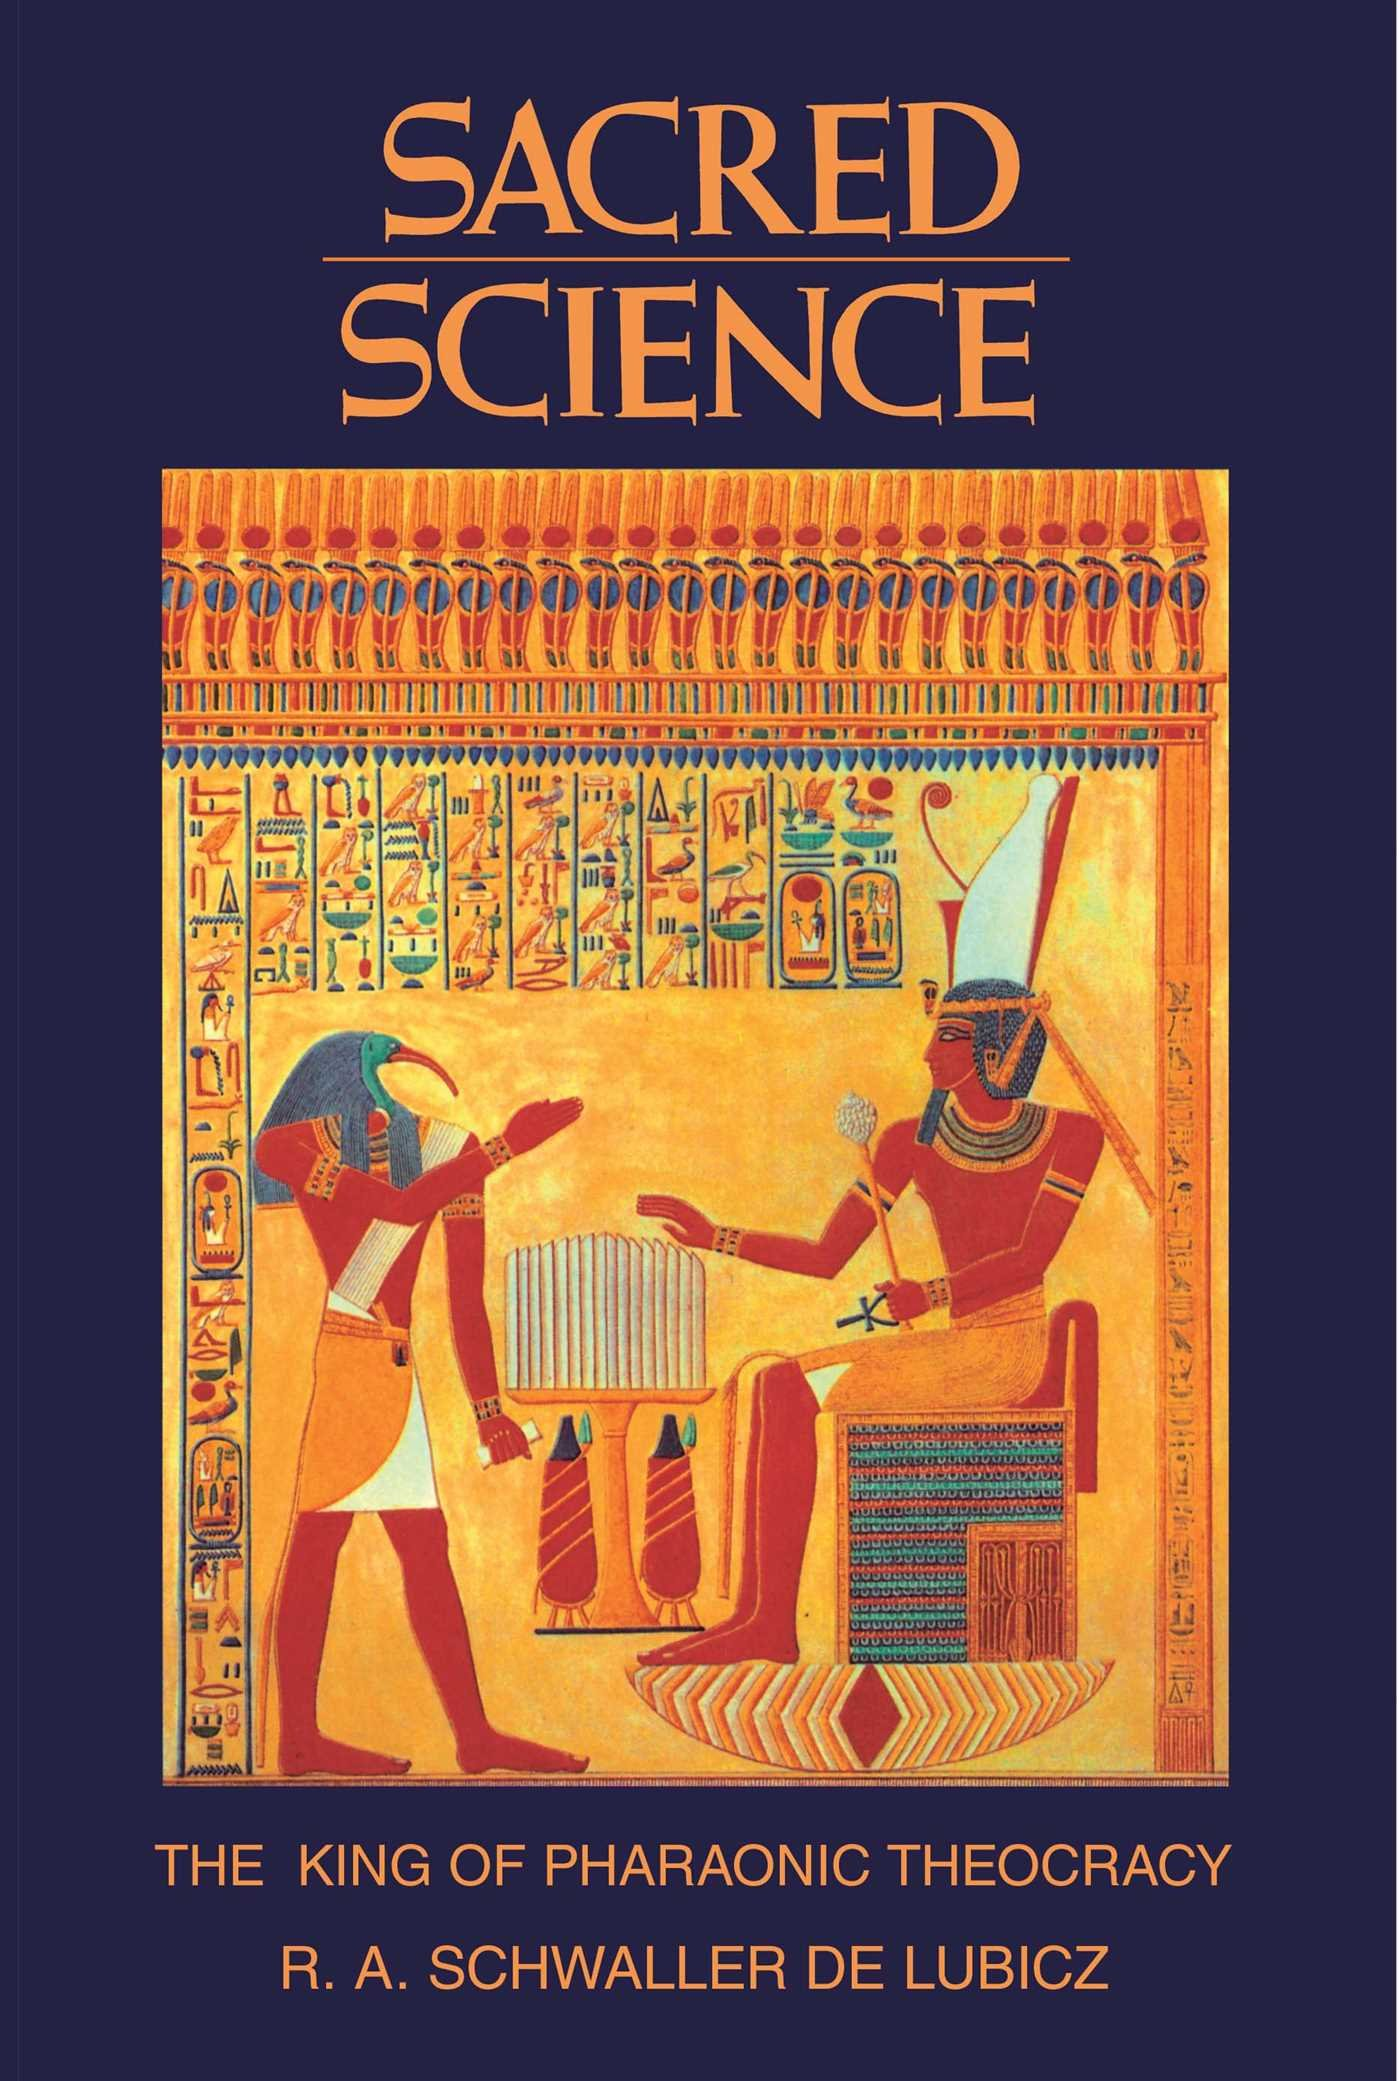 Sacred science the king of pharaonic theocracy r a schwaller de sacred science the king of pharaonic theocracy r a schwaller de lubicz 9780892812226 amazon books fandeluxe Images